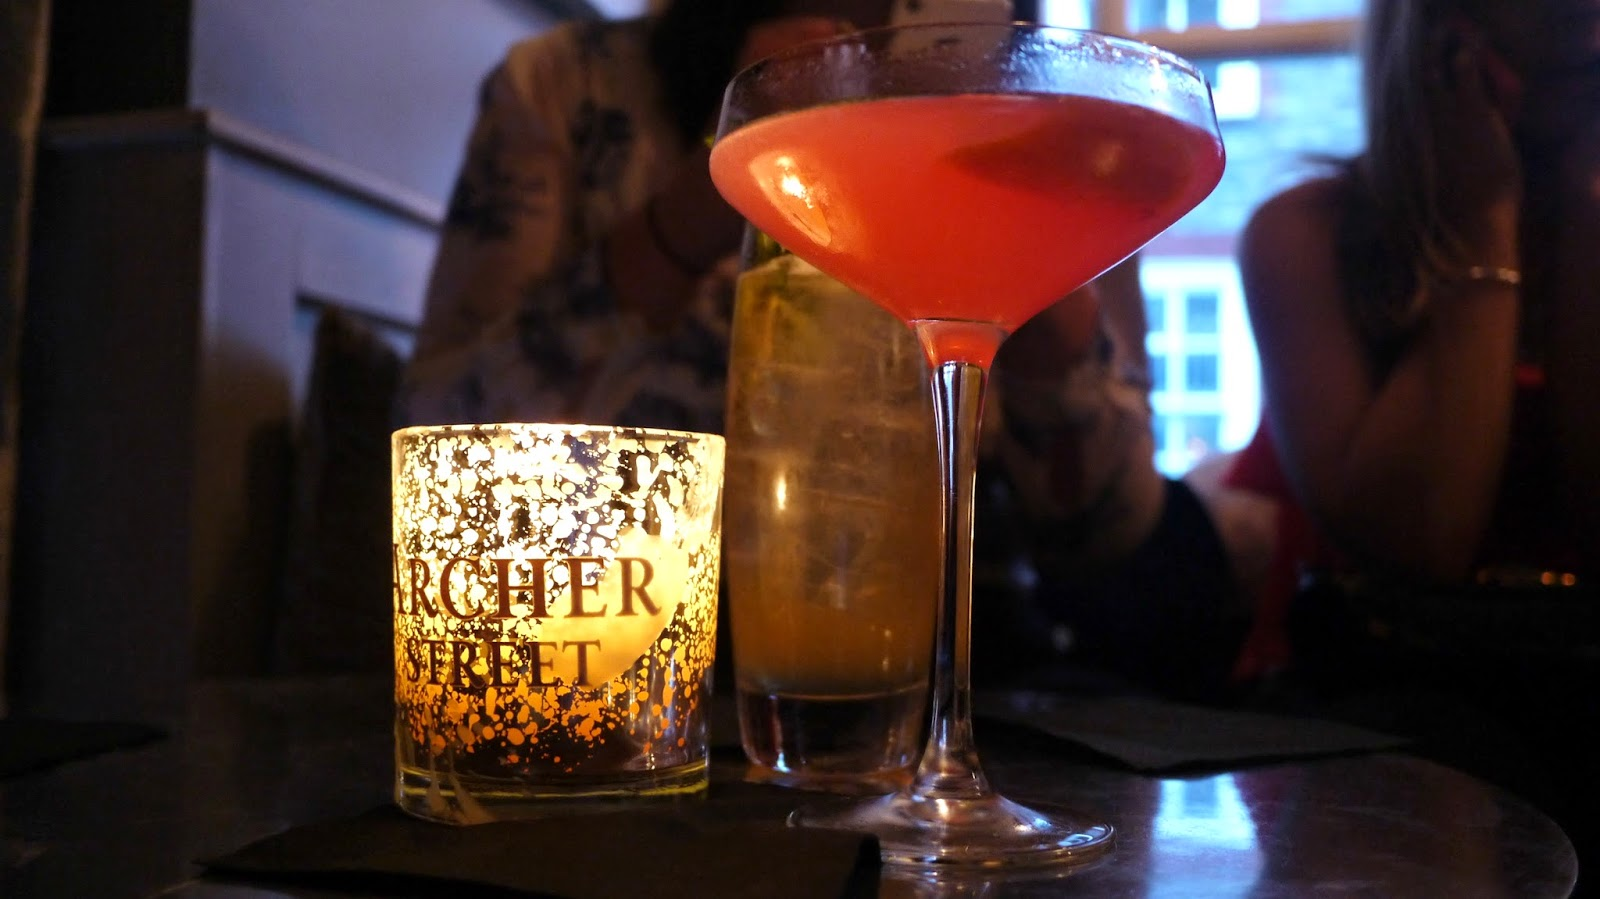 Archer Street Soho Cosmopolitan cocktail